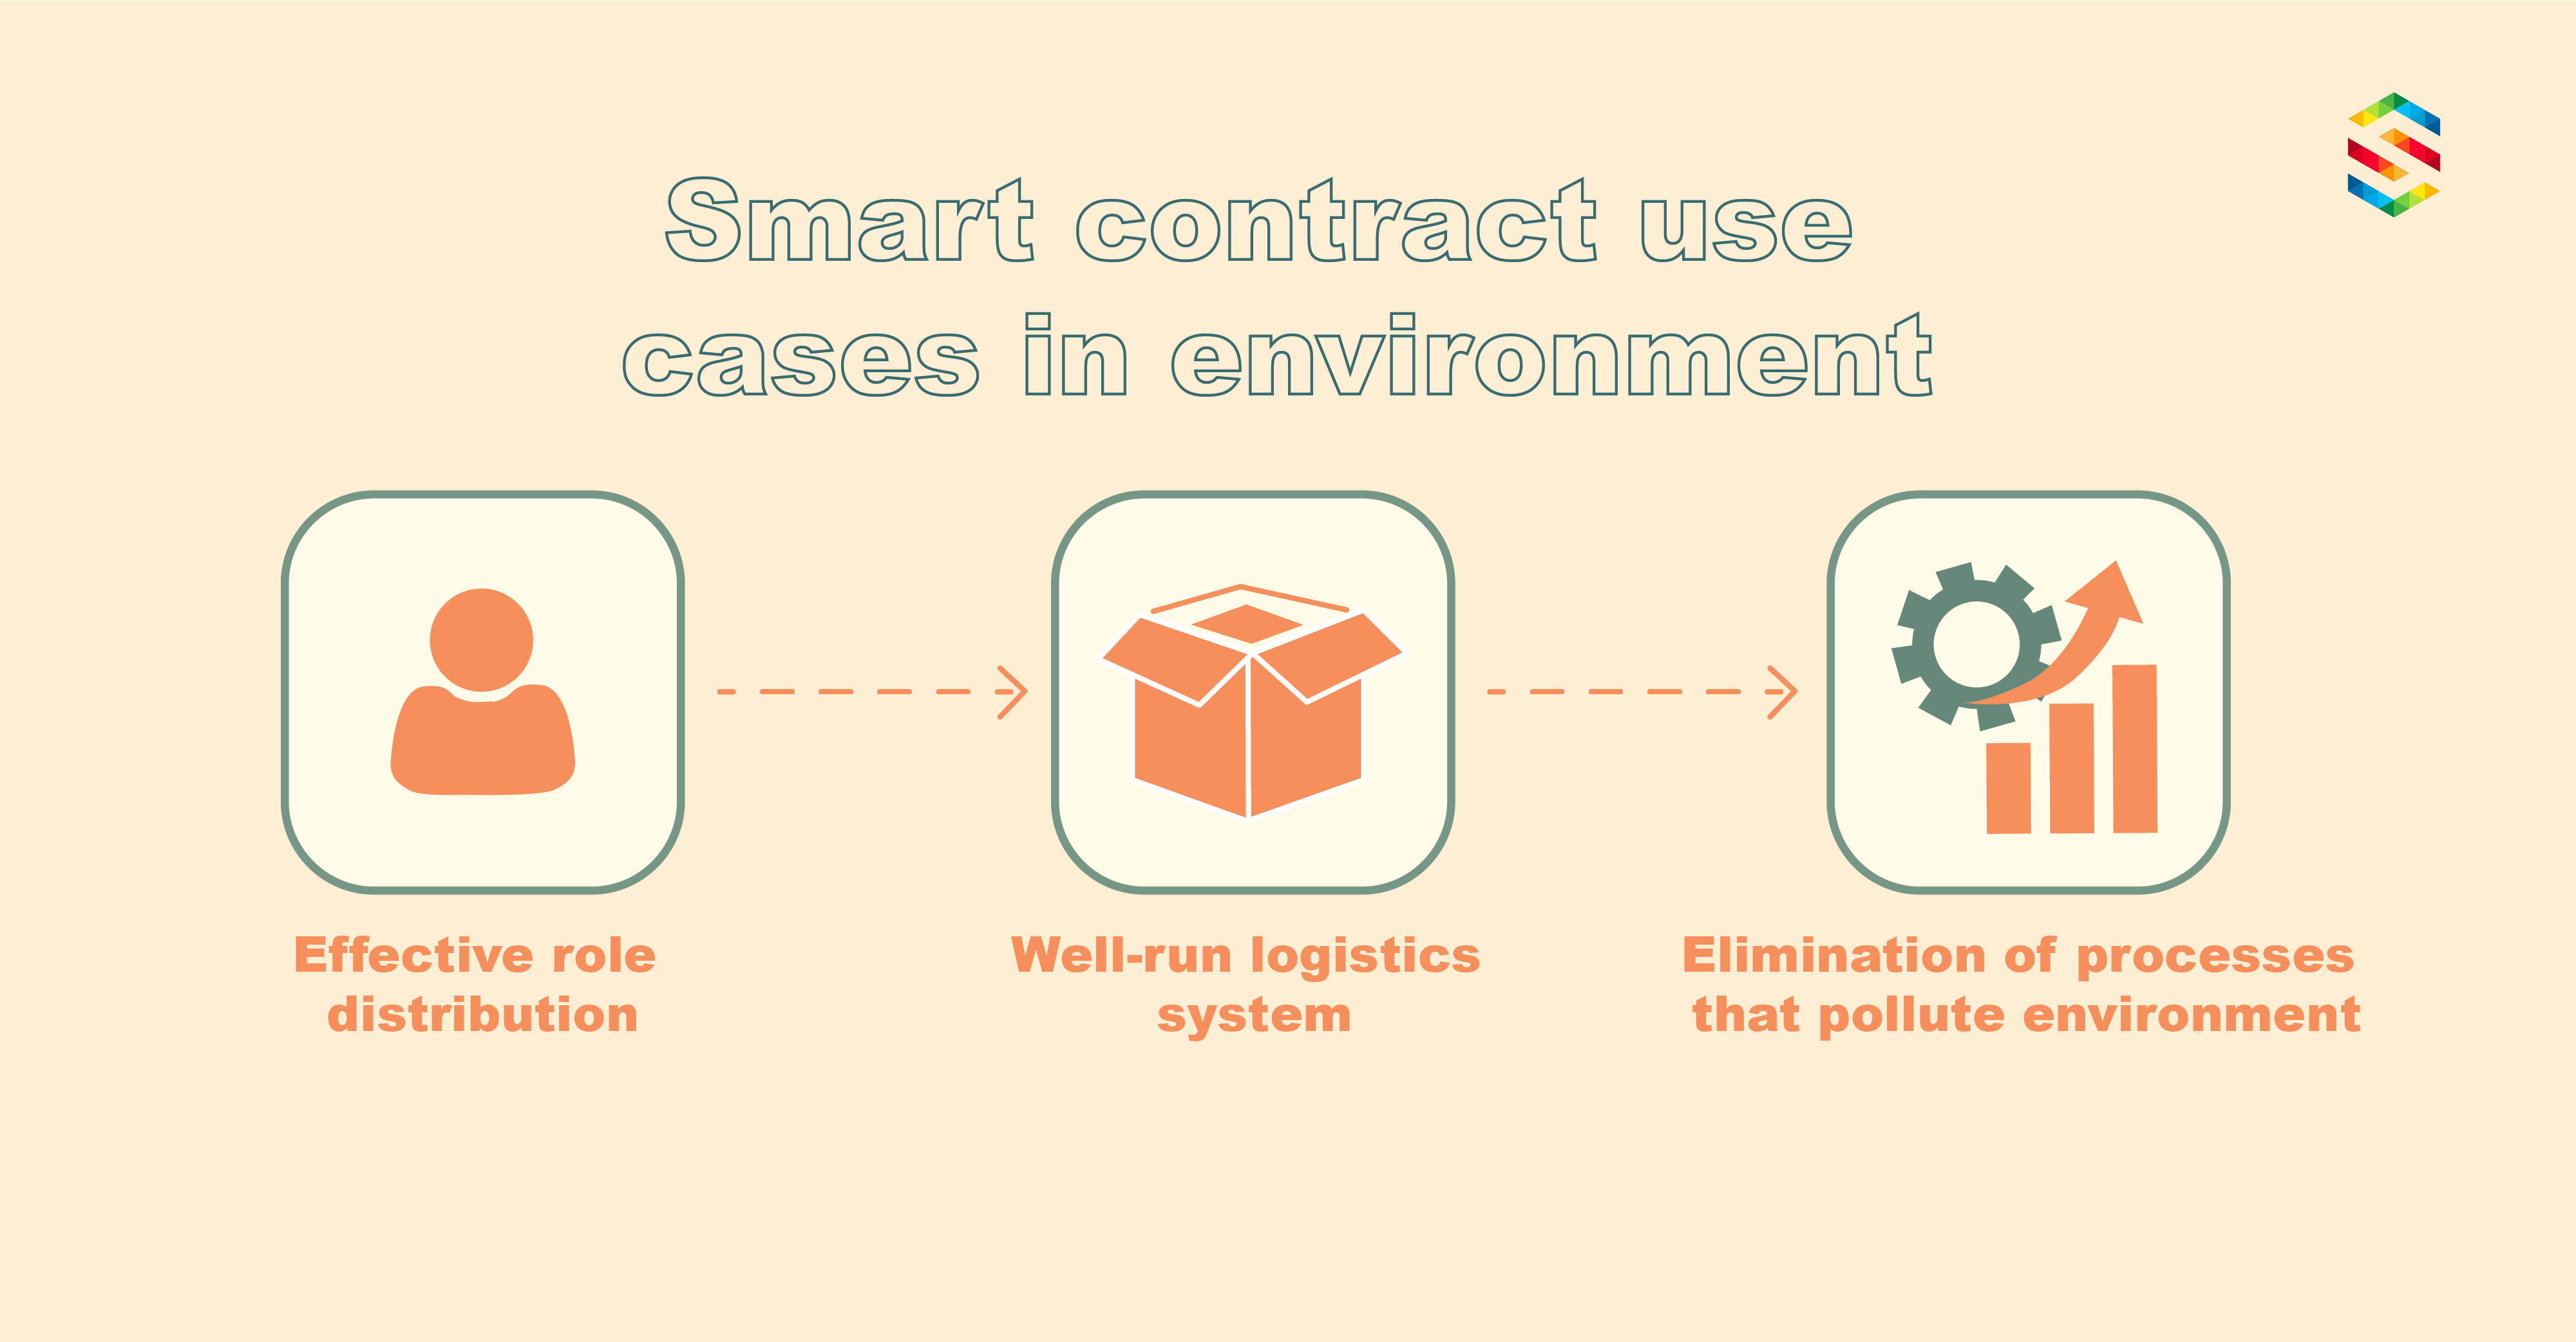 Smart contracts may improve the environment